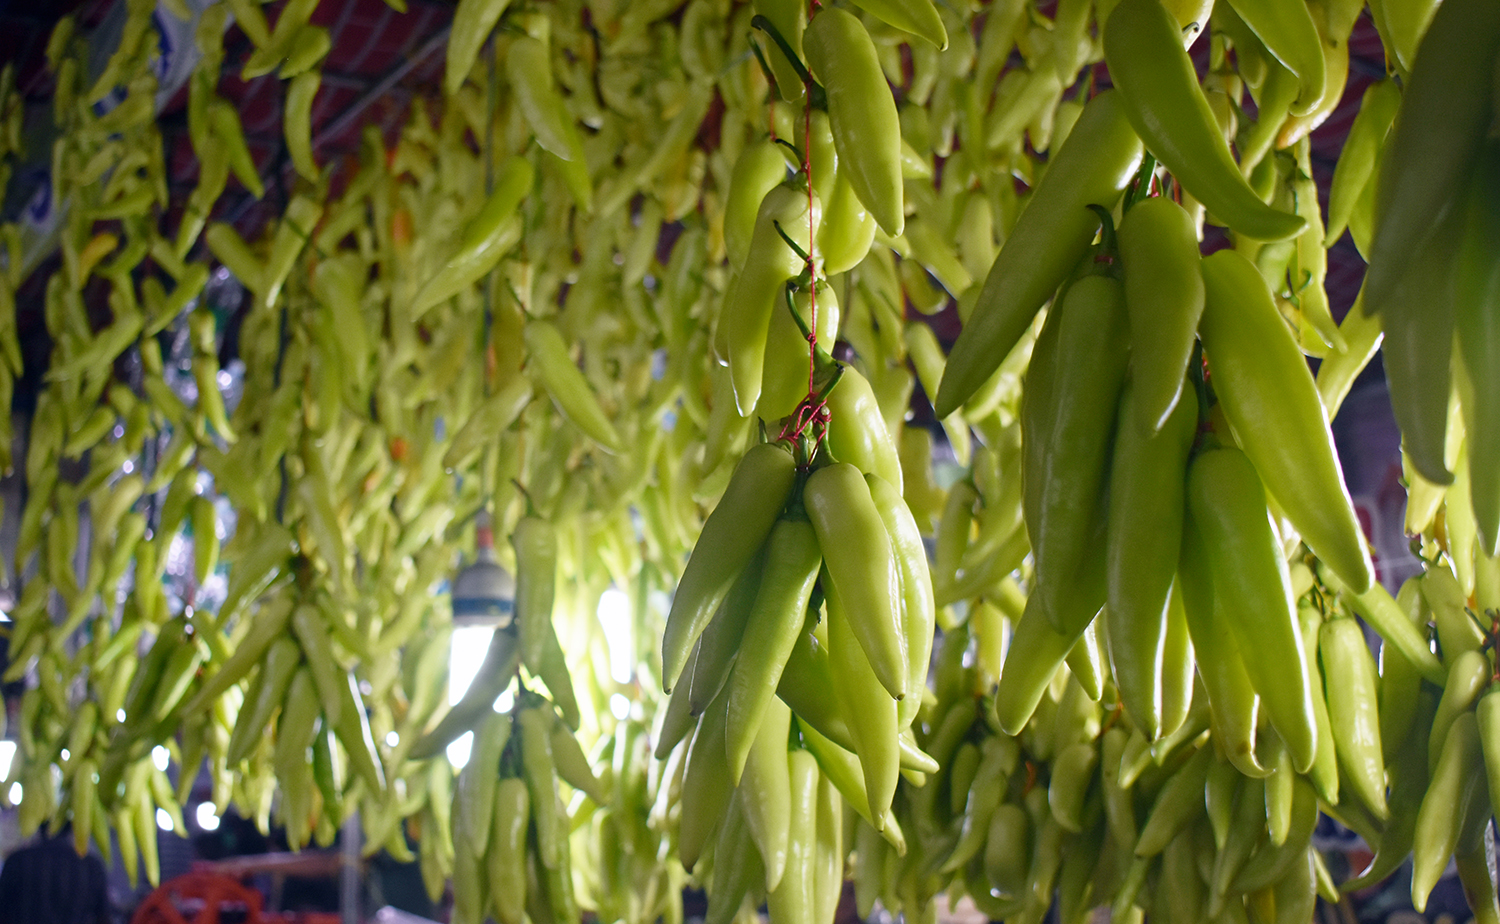 Chillies used for making a snack called 'Baji' being hanged in front of a 'Baji Shop'. A view from Edapally, Kerala.